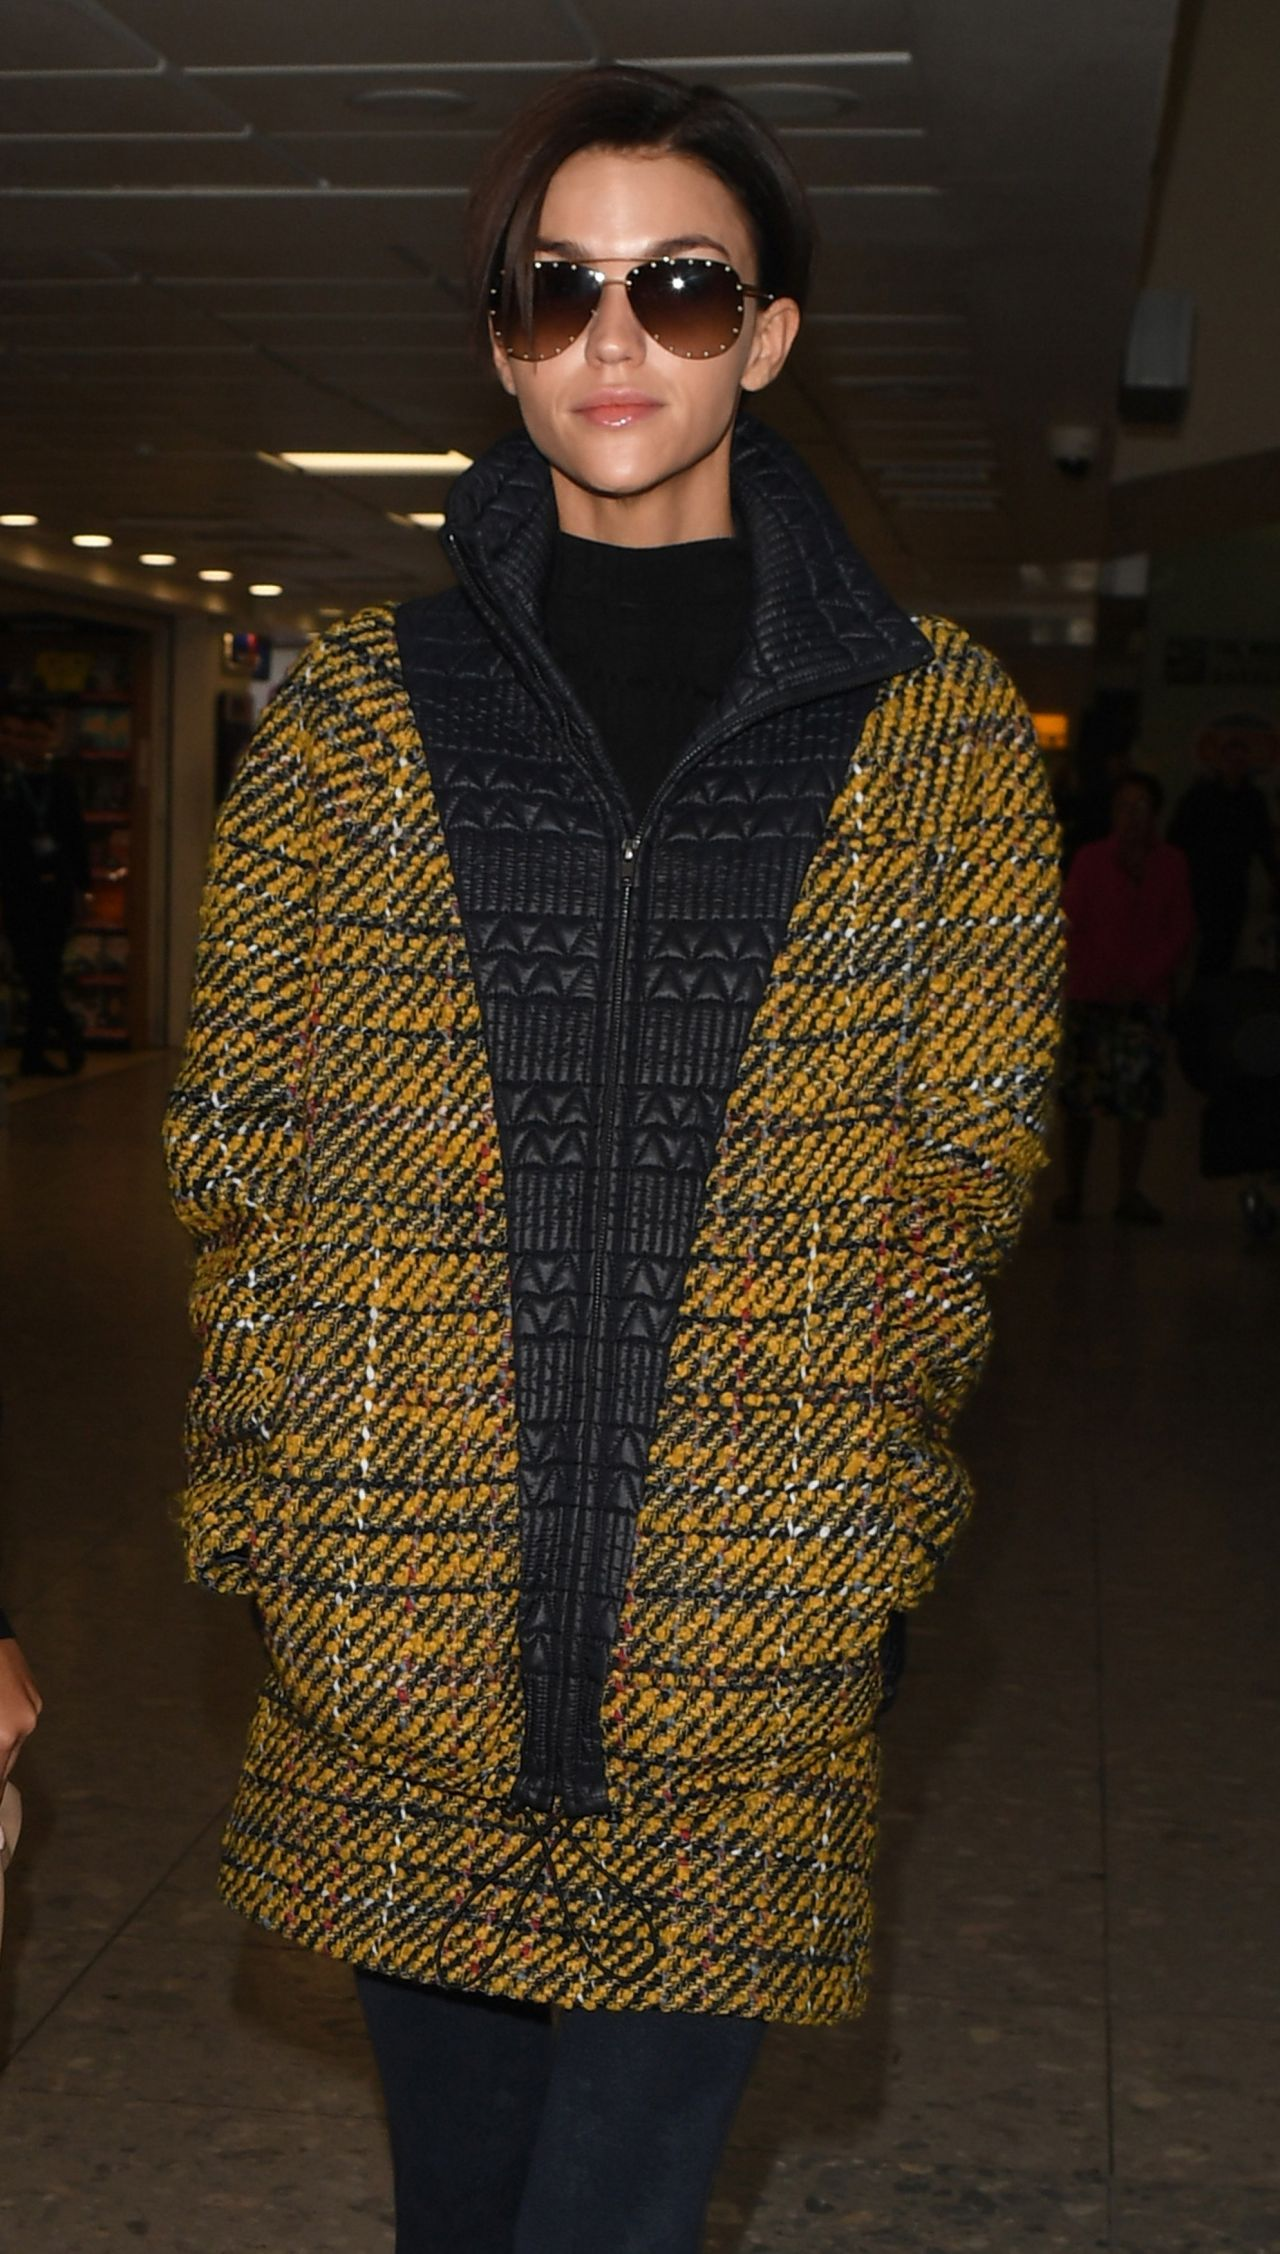 Ruby Rose Travel Outfit Heathrow Airport In London 1 10